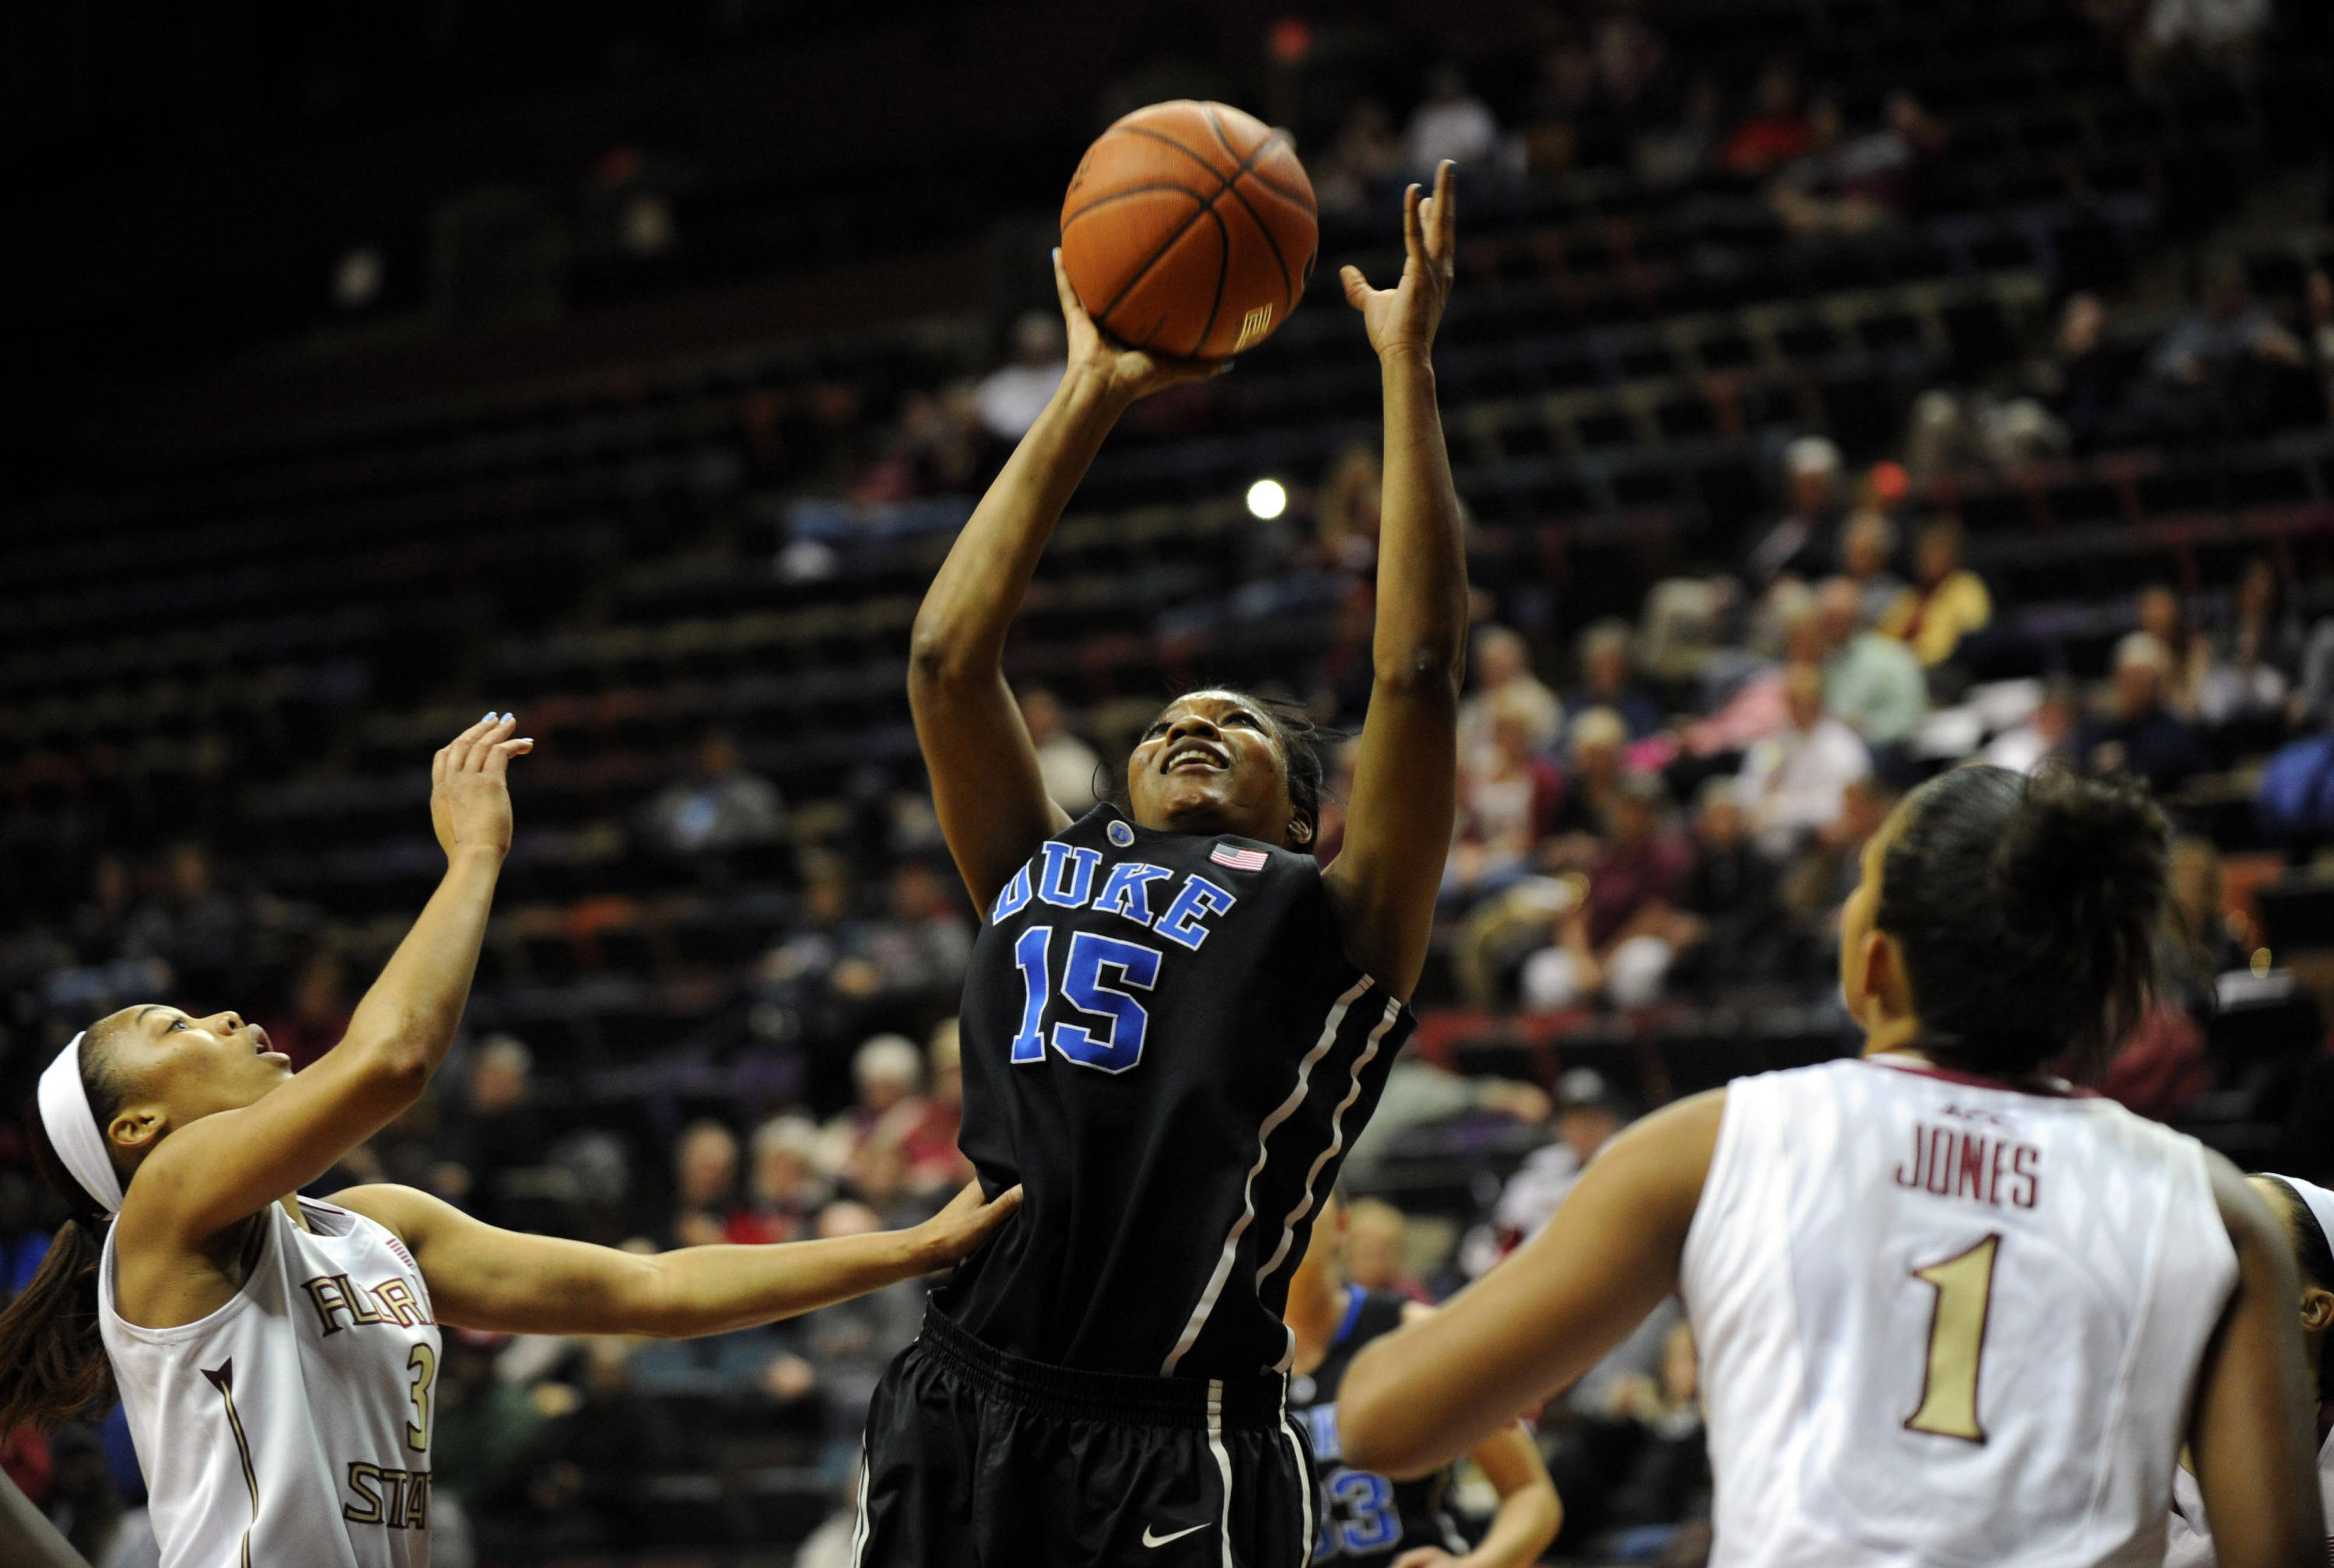 Jan 23, 2014; Tallahassee, FL, USA; Duke Blue Devils guard Richa Jackson (15) shoots the ball past Florida State Seminoles guard Emiah Bingley (3) during the first half of the game at the Donald L. Tucker Center (Tallahassee). Mandatory Credit: Melina Vastola-USA TODAY Sports